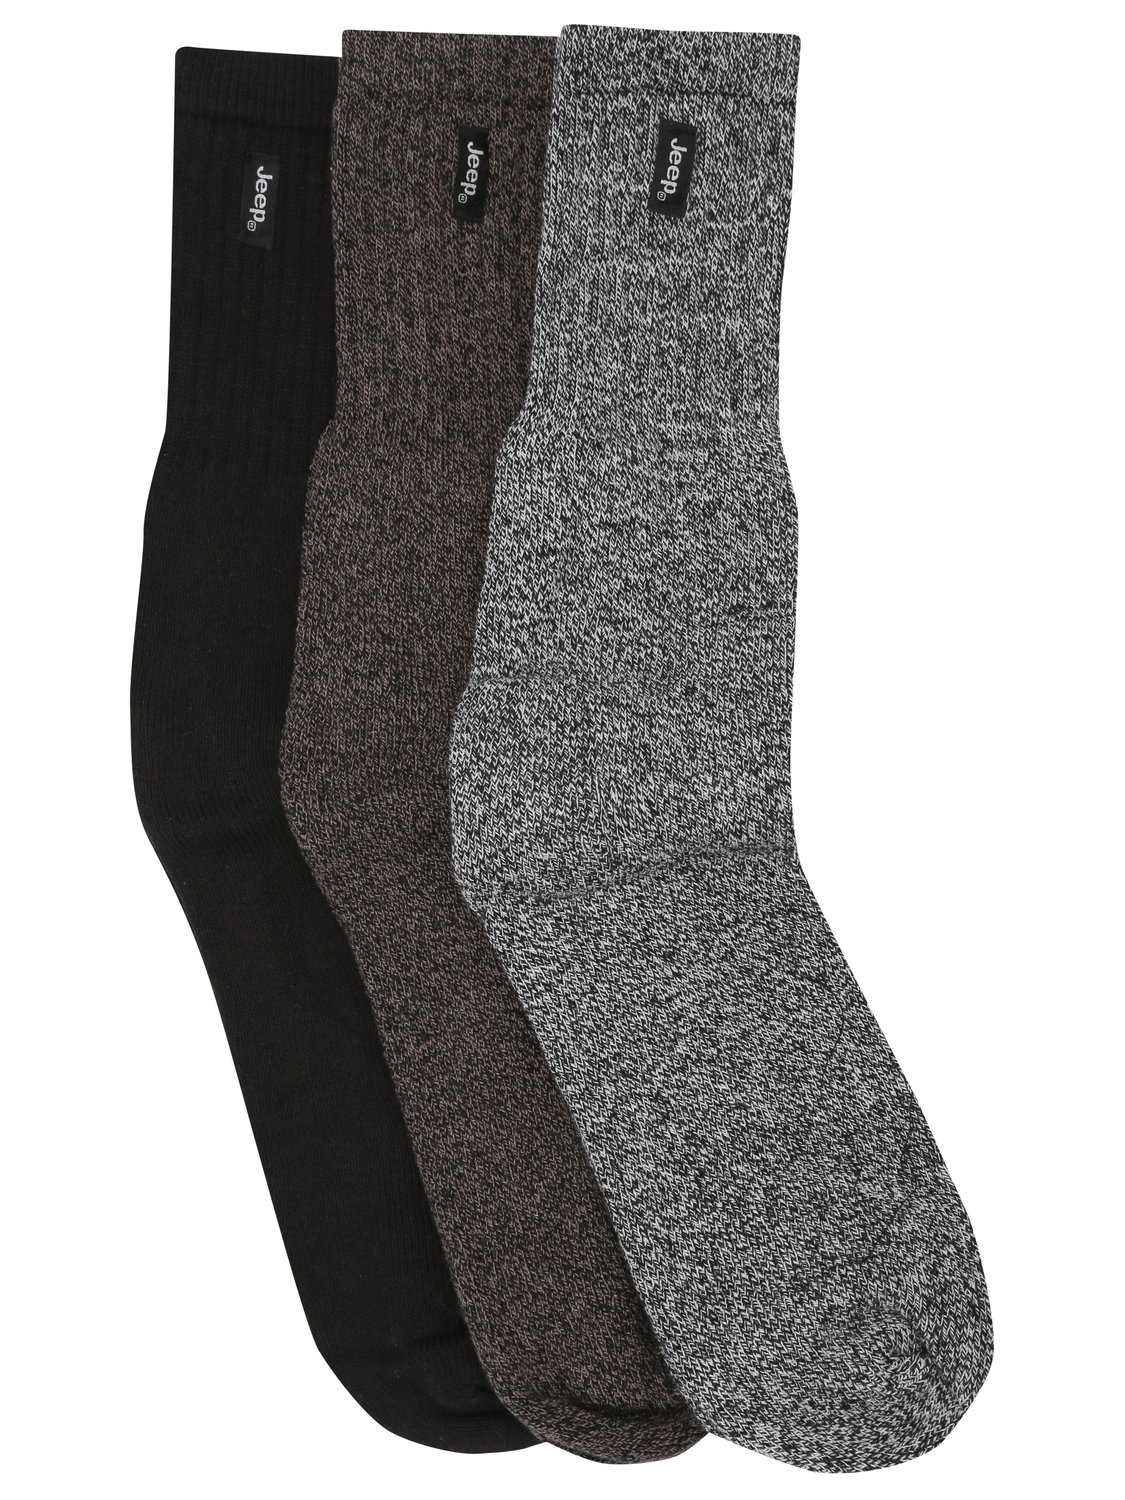 Image of Jeep Urban Trail Cushioned Soles Ribbed Ankle Cotton Rich Socks - 3 pack - Black